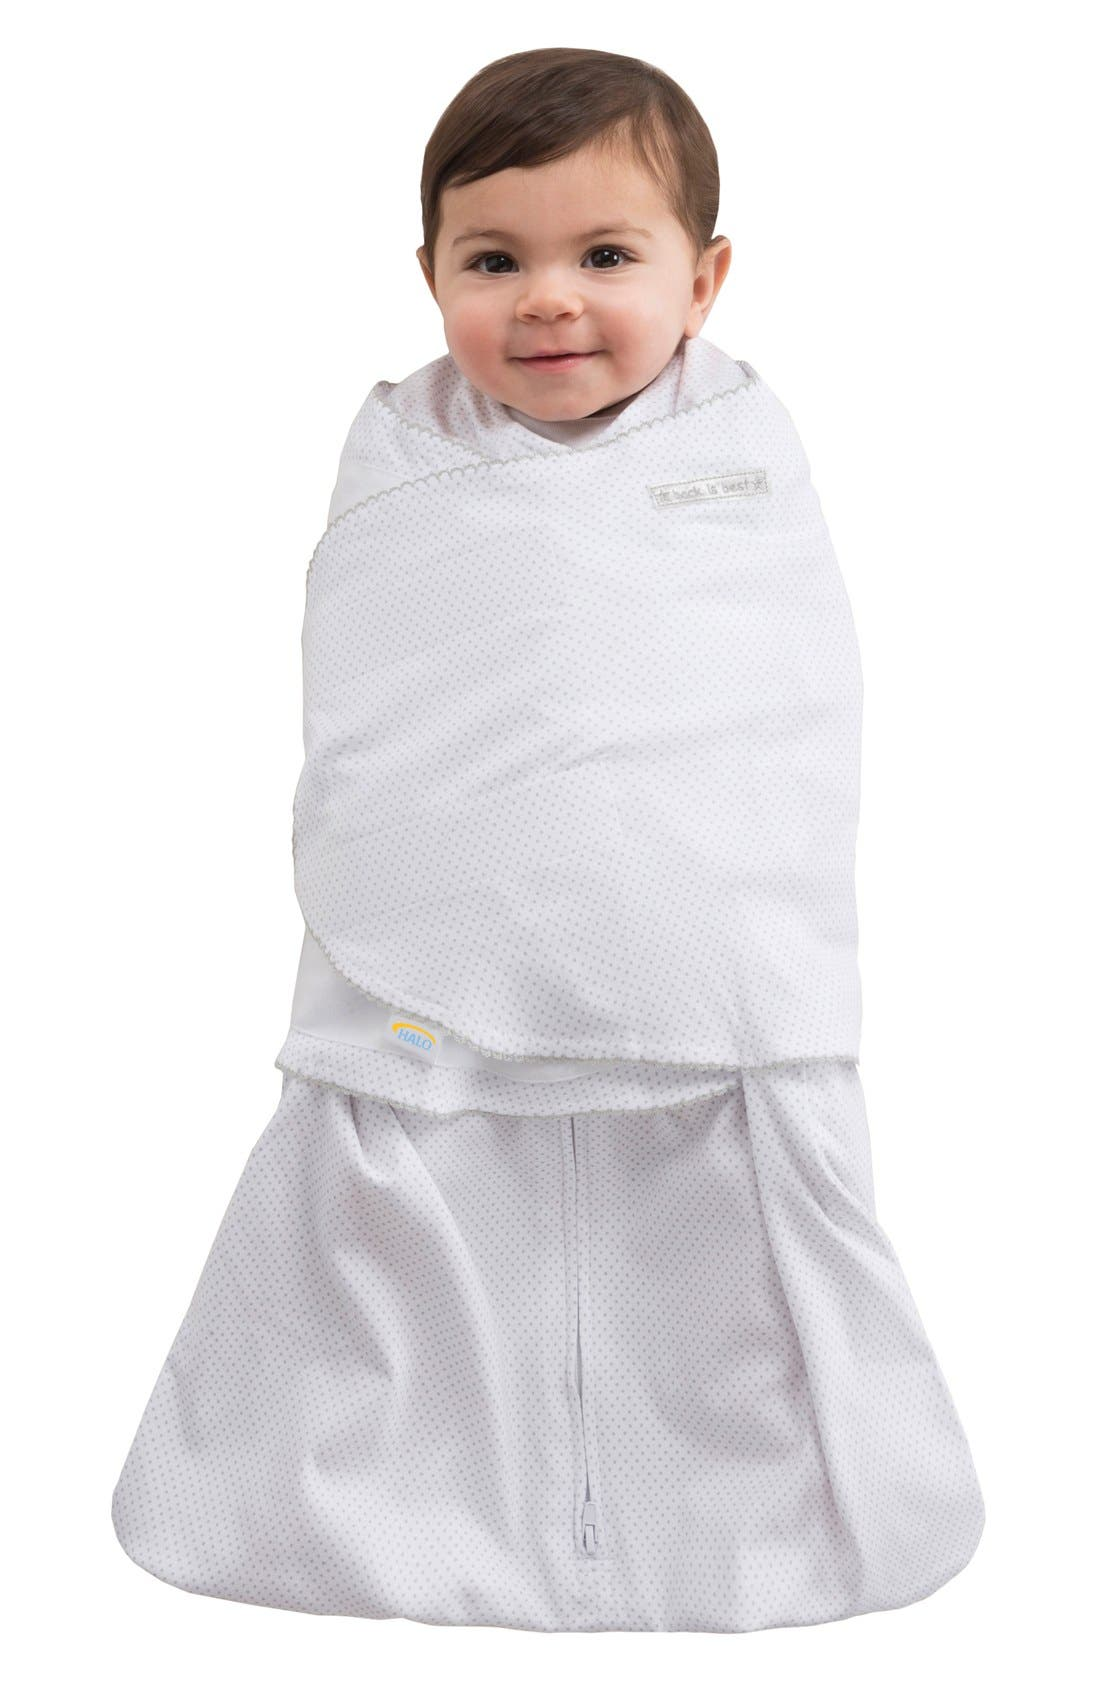 Halo Innovations Wearable Swaddle Blanket (Baby)